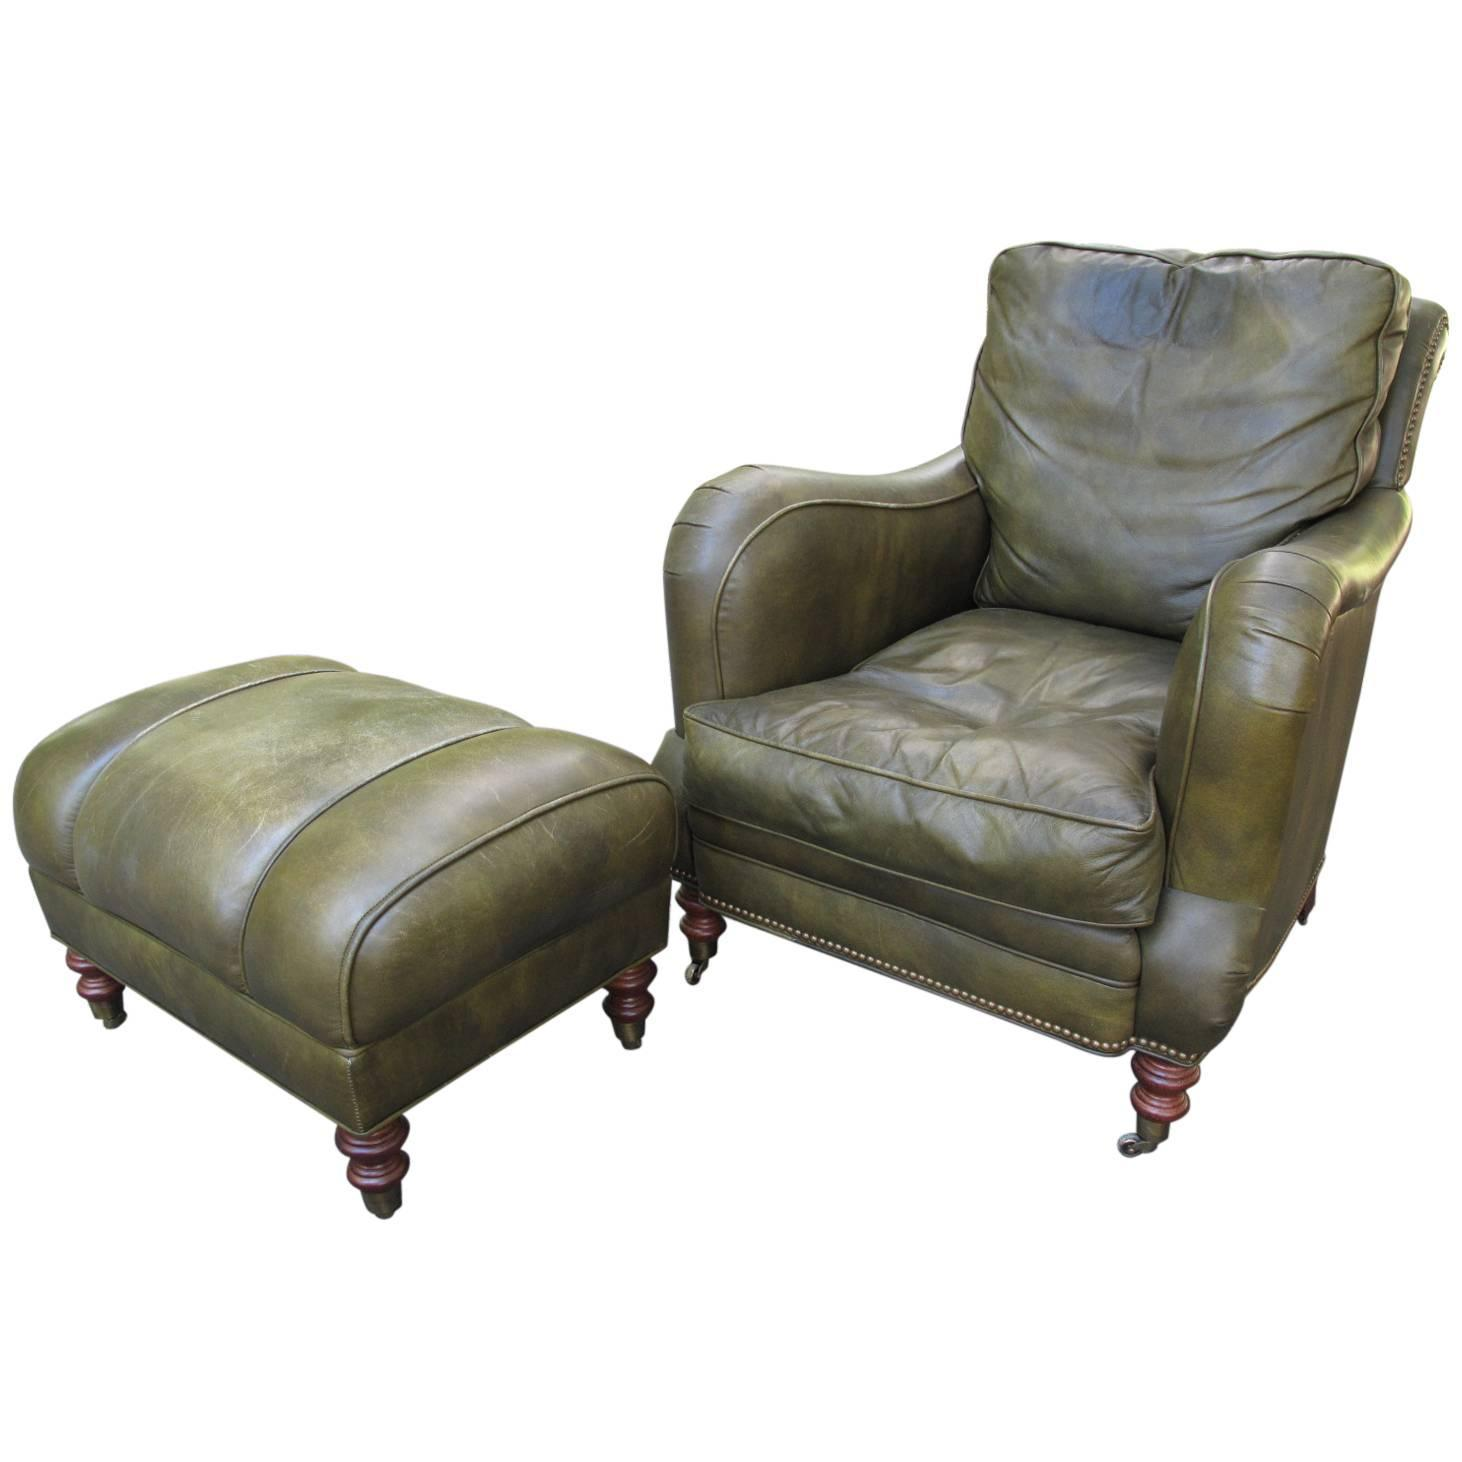 Leather club chair with ottoman at 1stdibs for Chair with ottoman